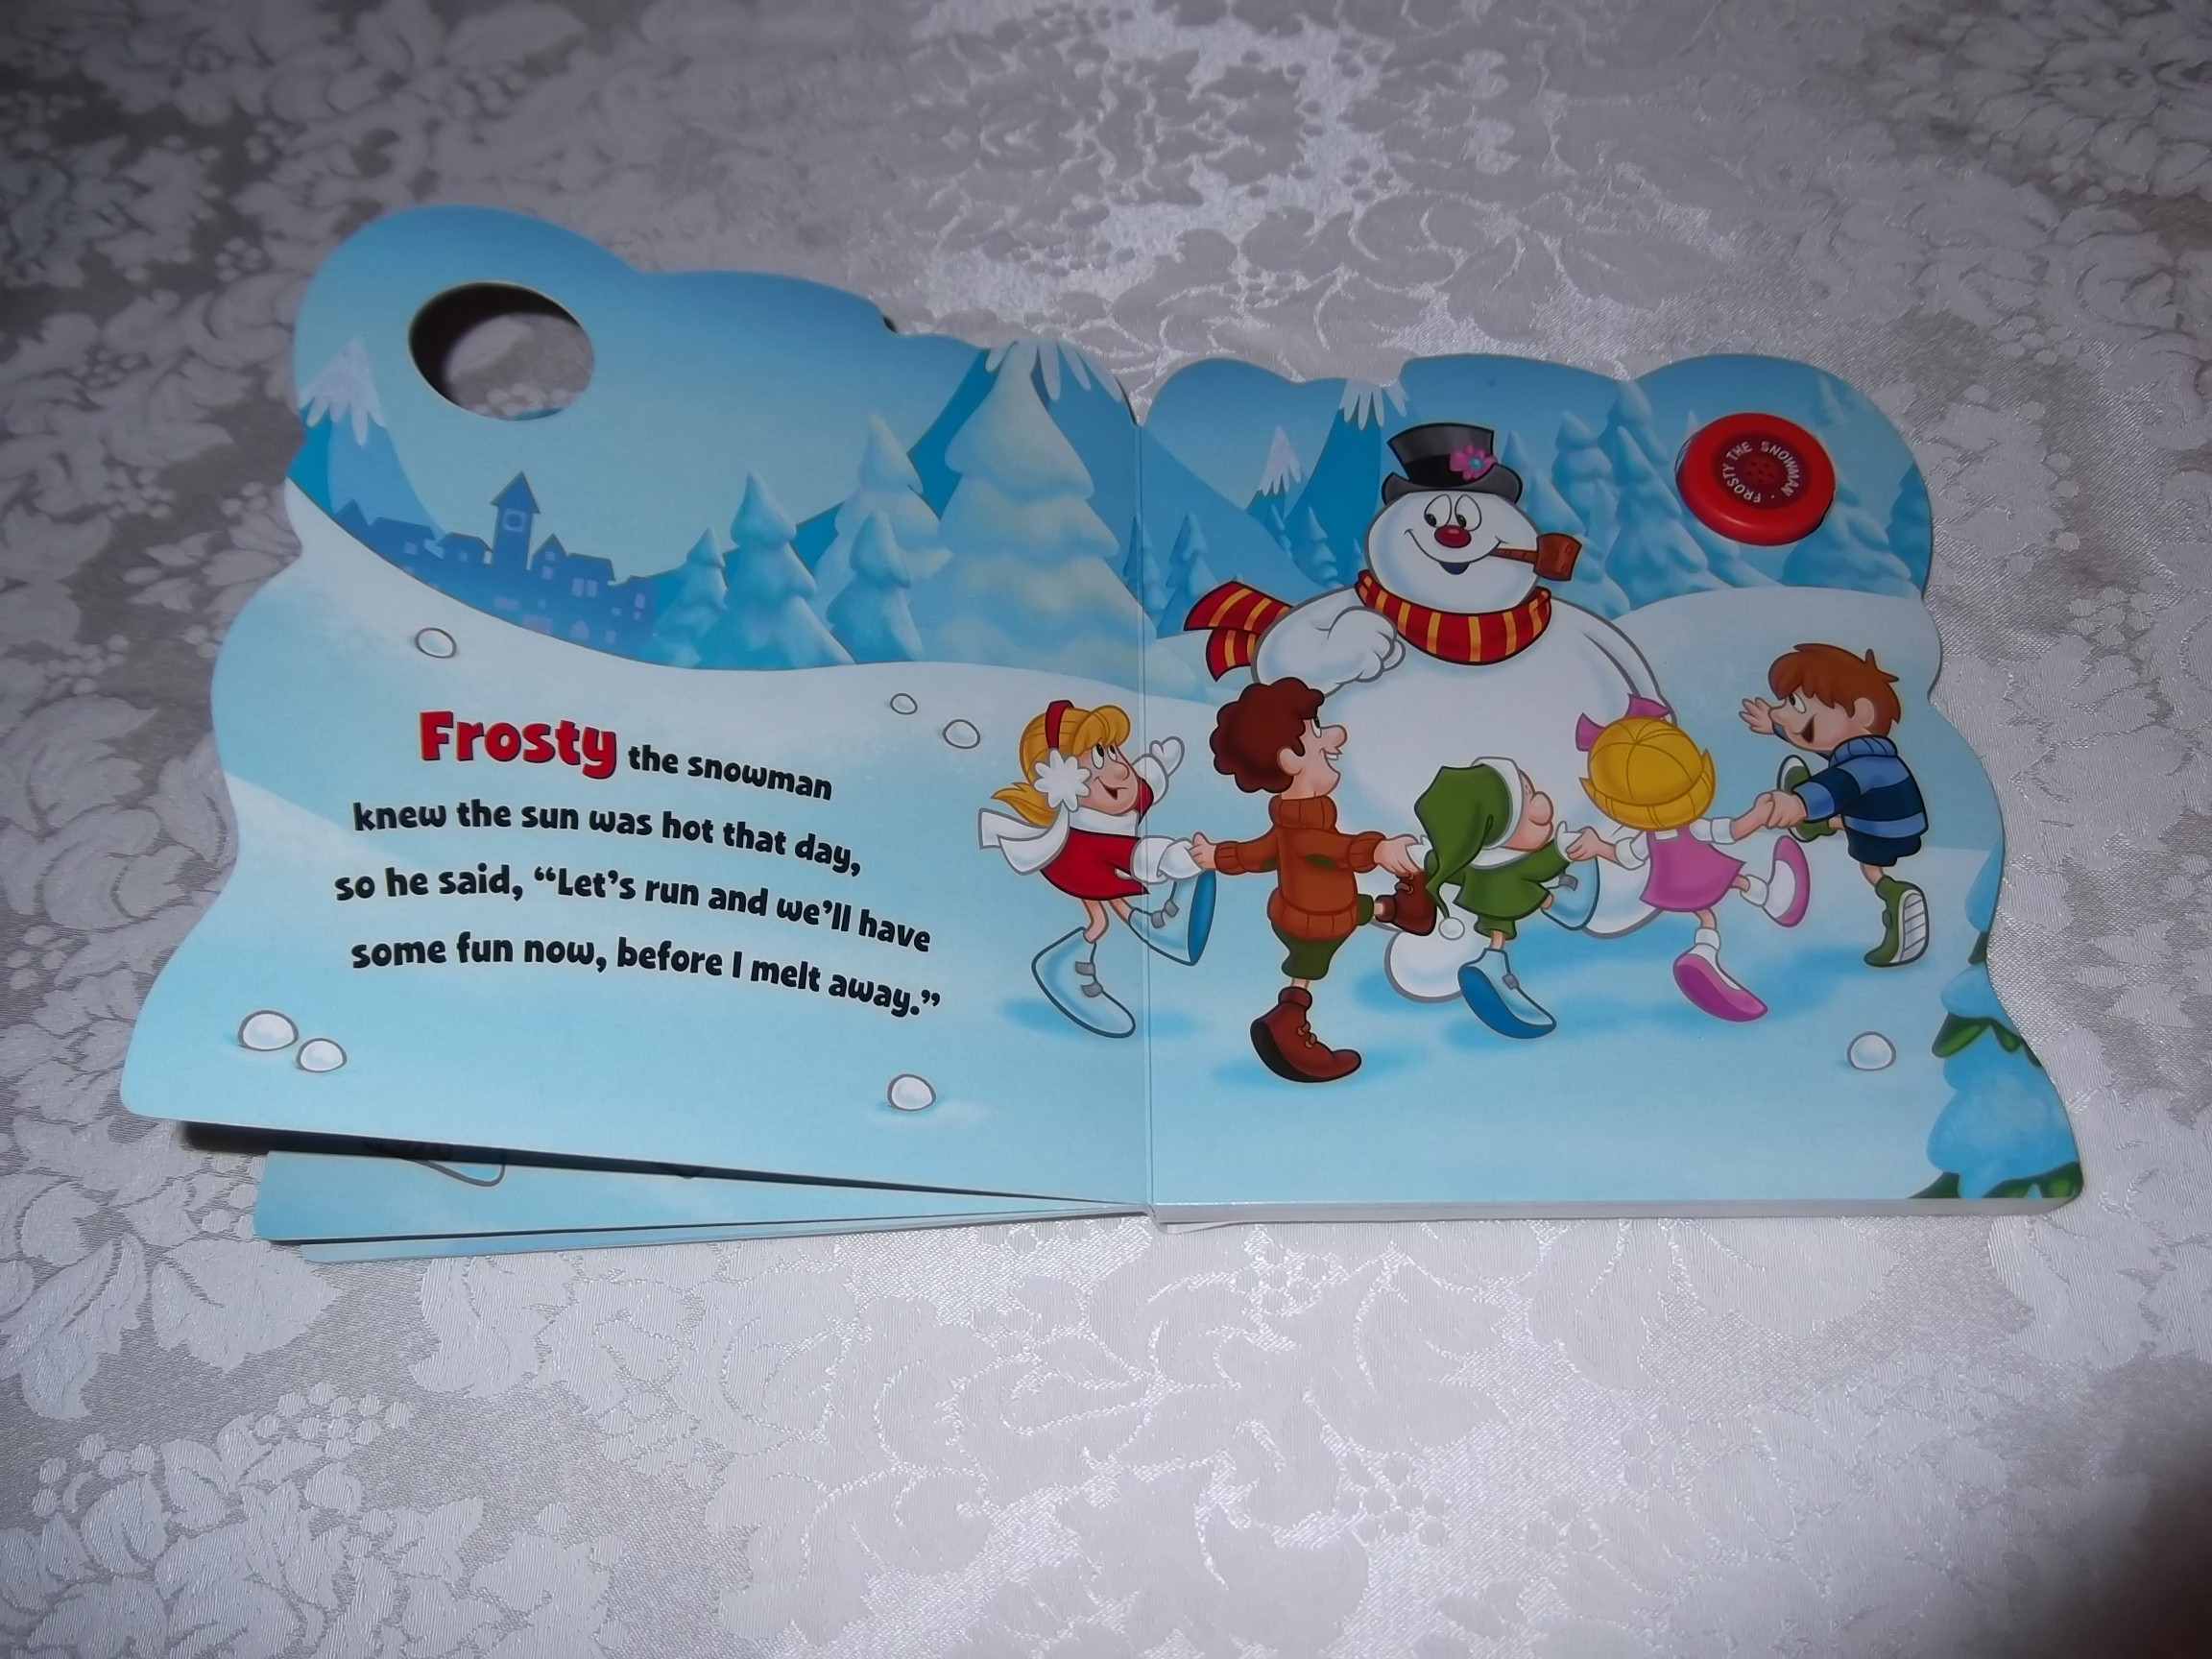 Image 5 of Frosty the Snowman Jack Rollins and Steve Nelson Brand New Sing Along Board Book